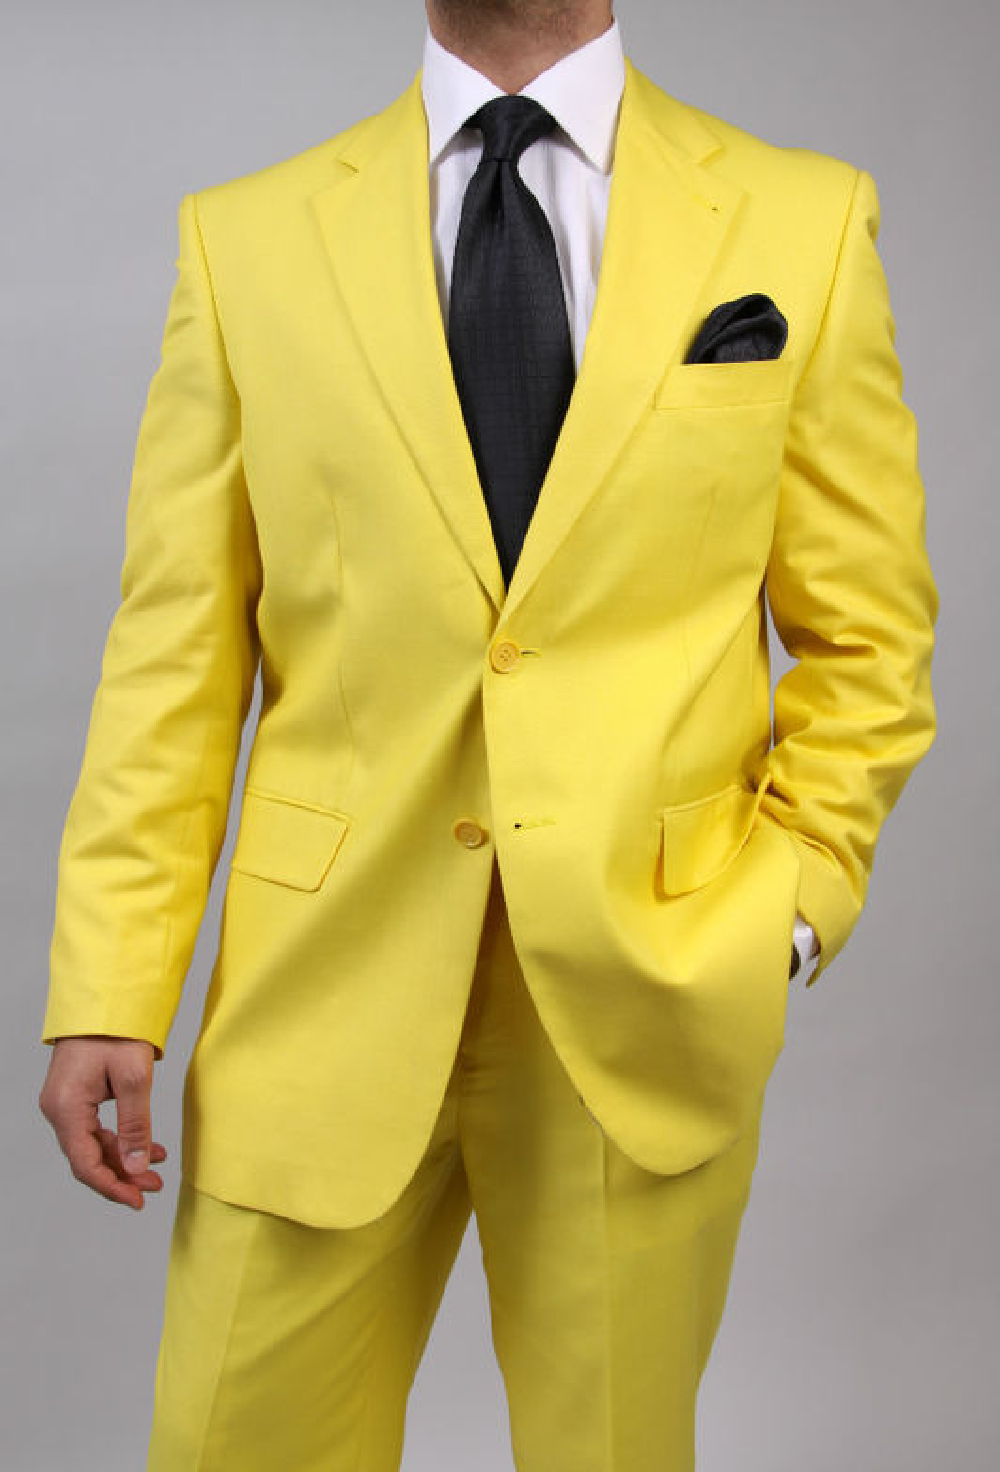 Yellow suit, would be best if it was old and worn, faded if ...